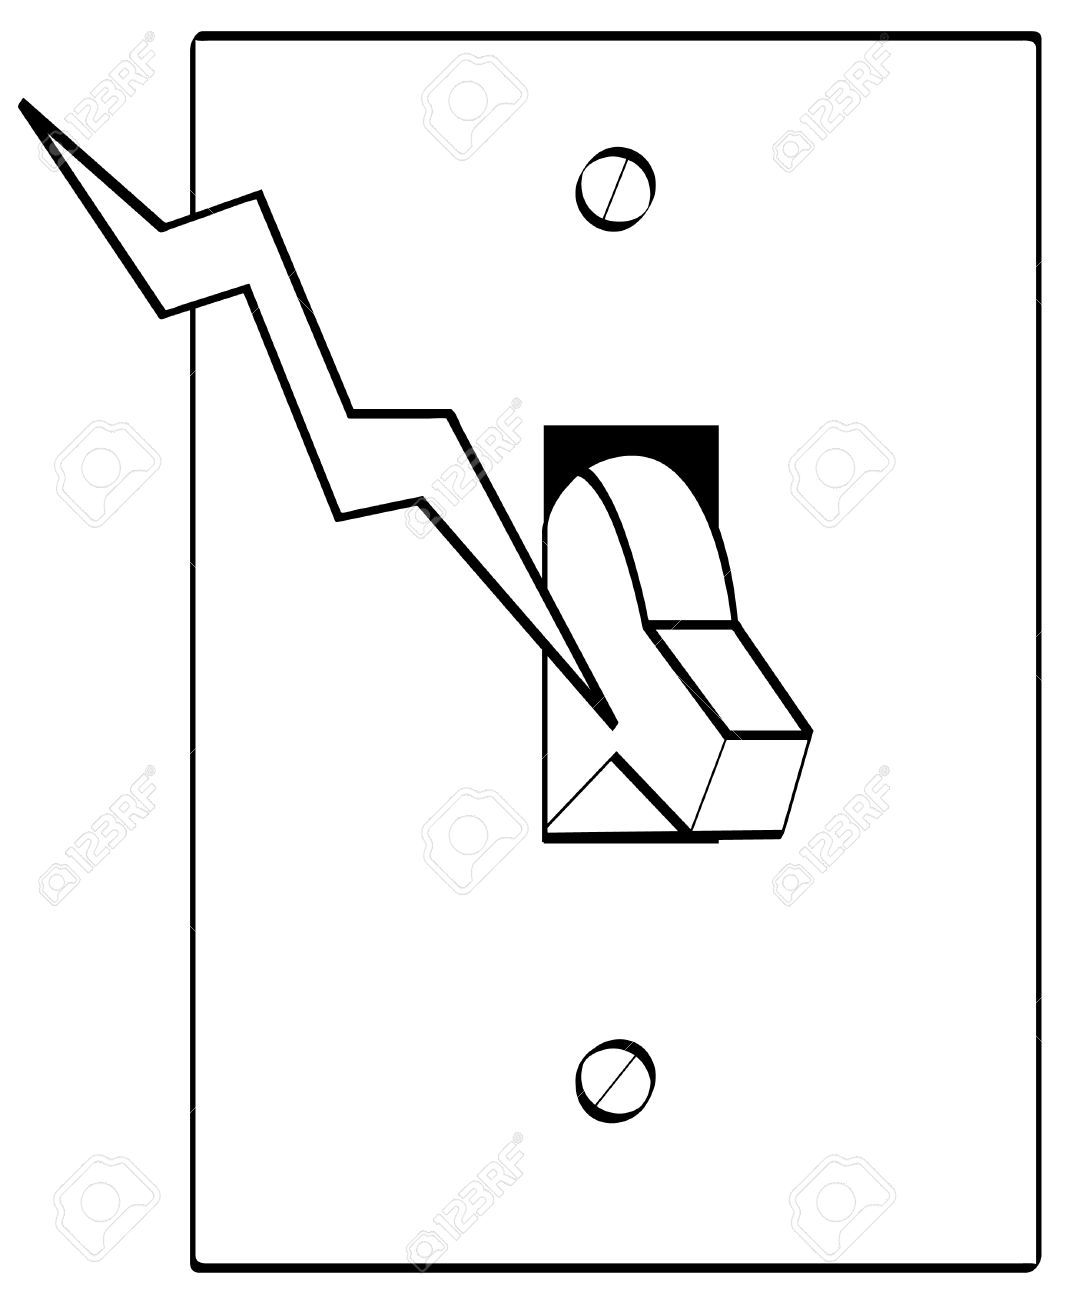 light switch electrical symbol sketch coloring page